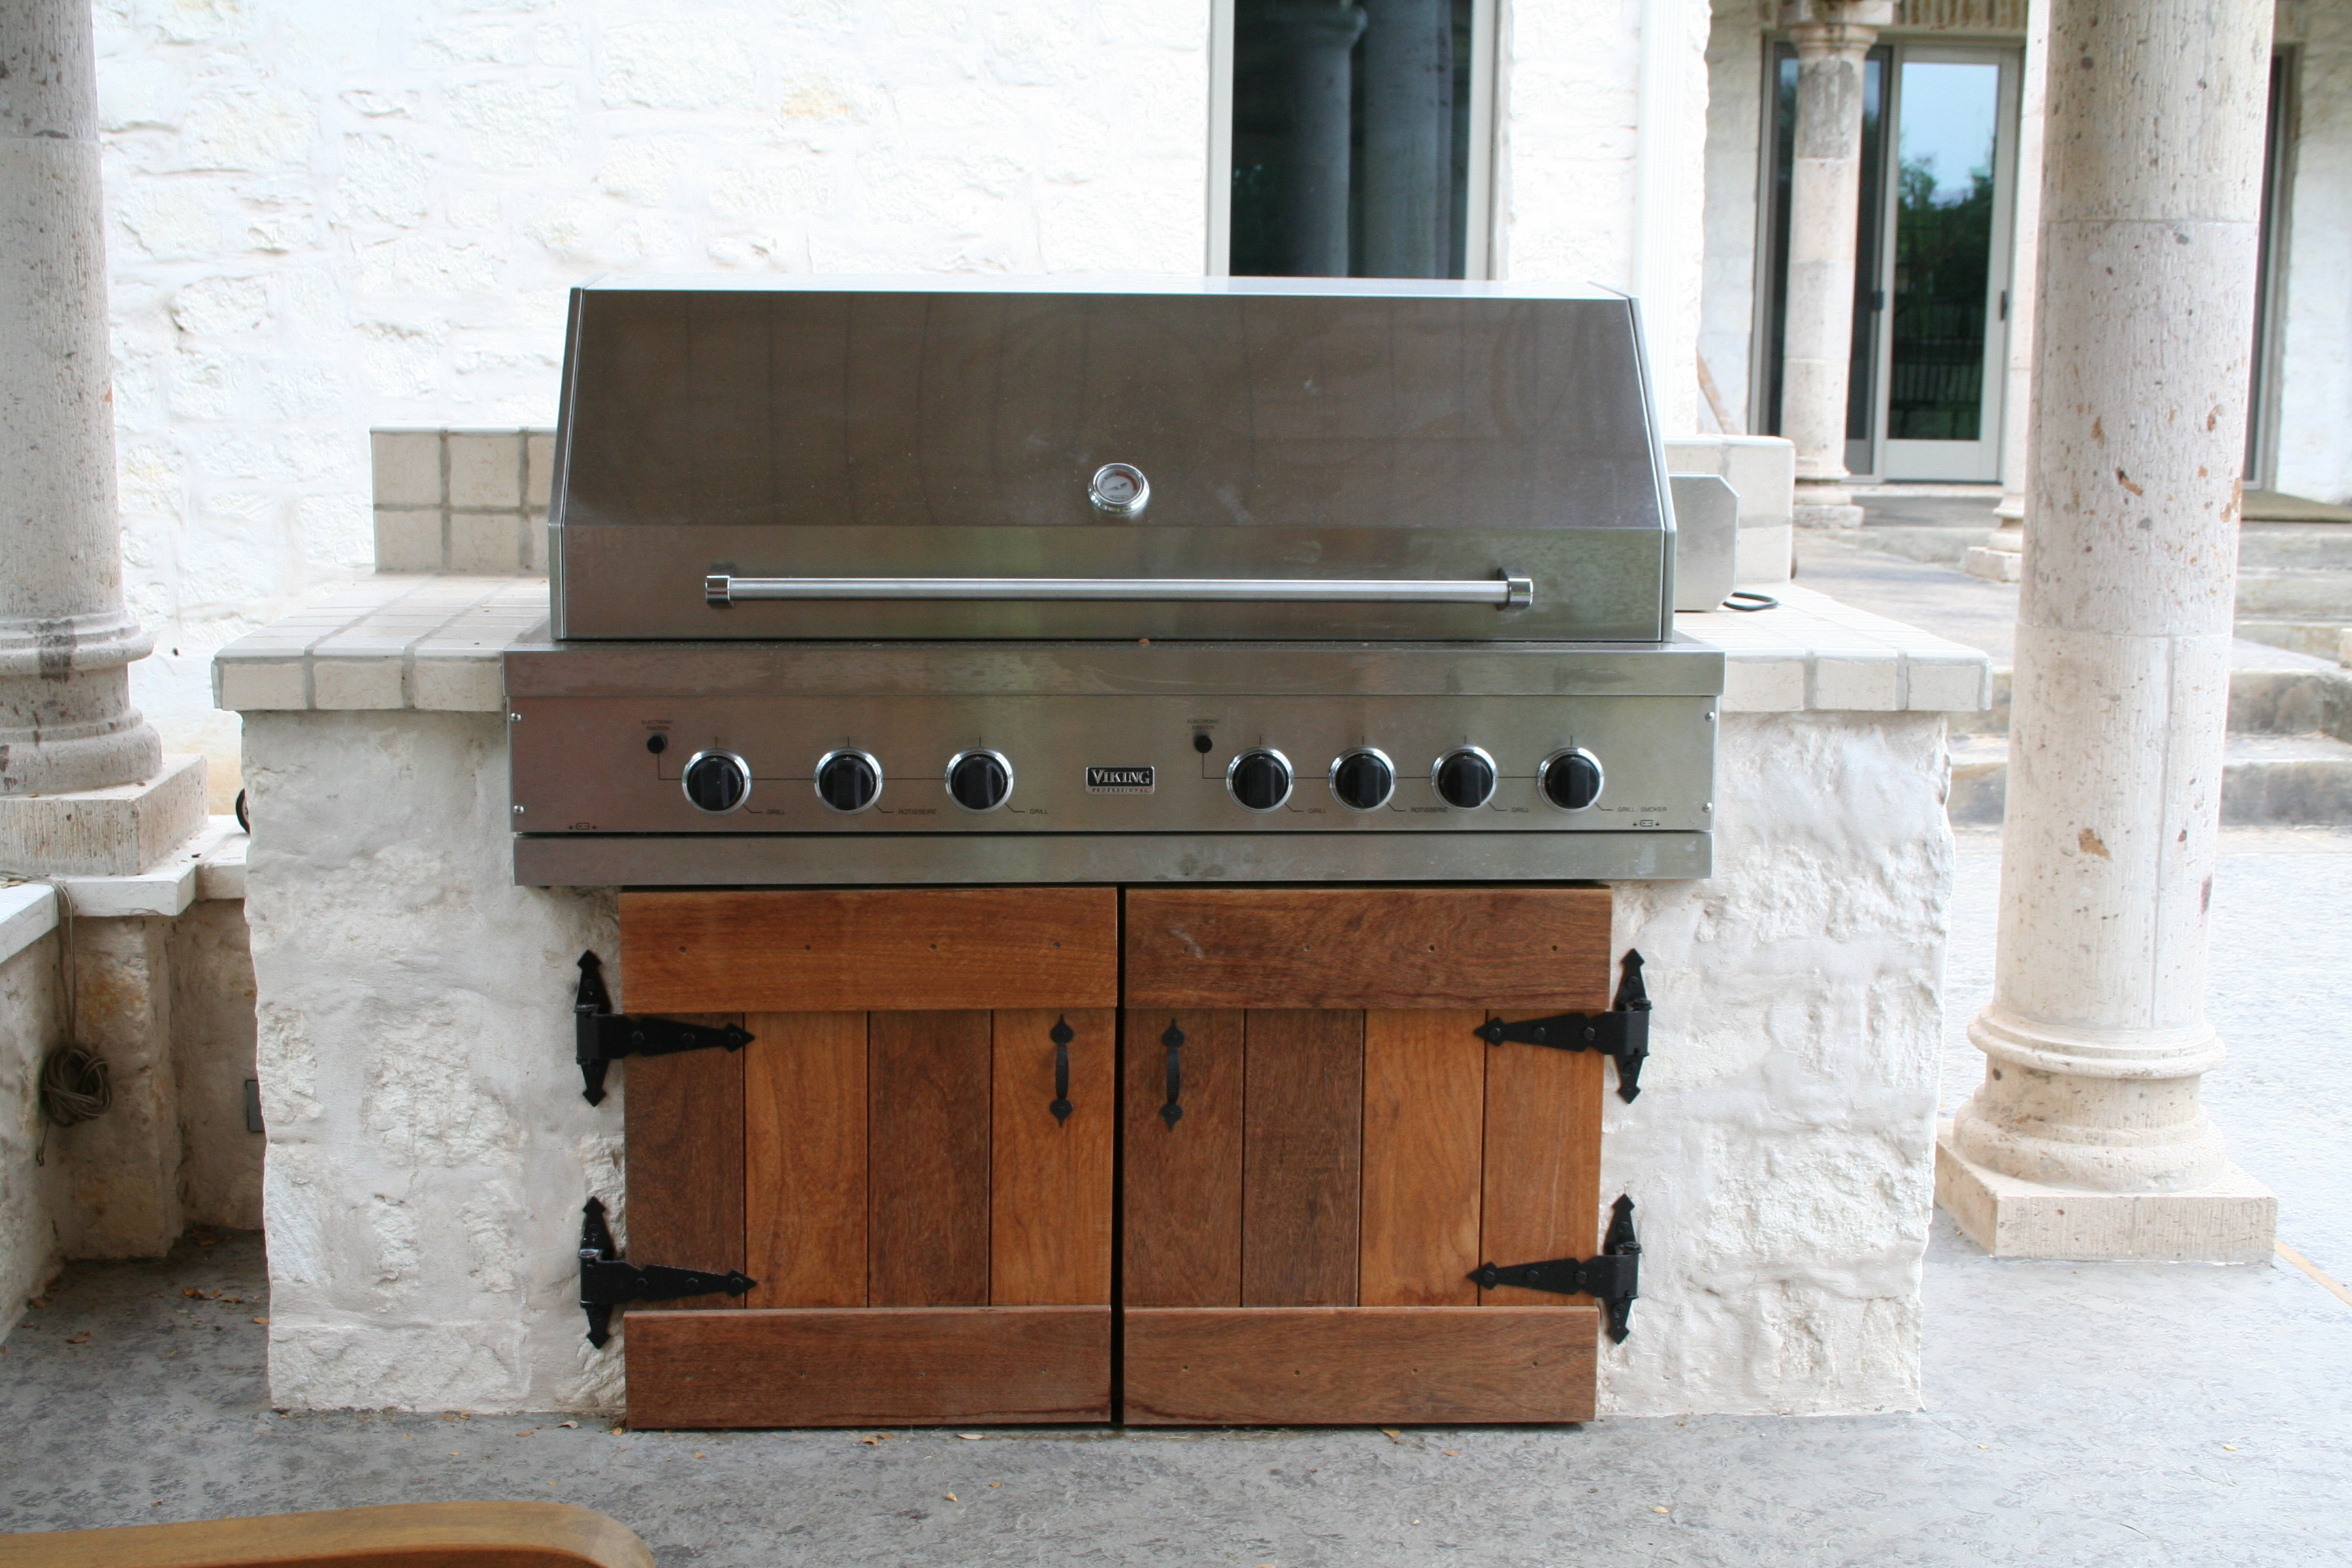 grill-4